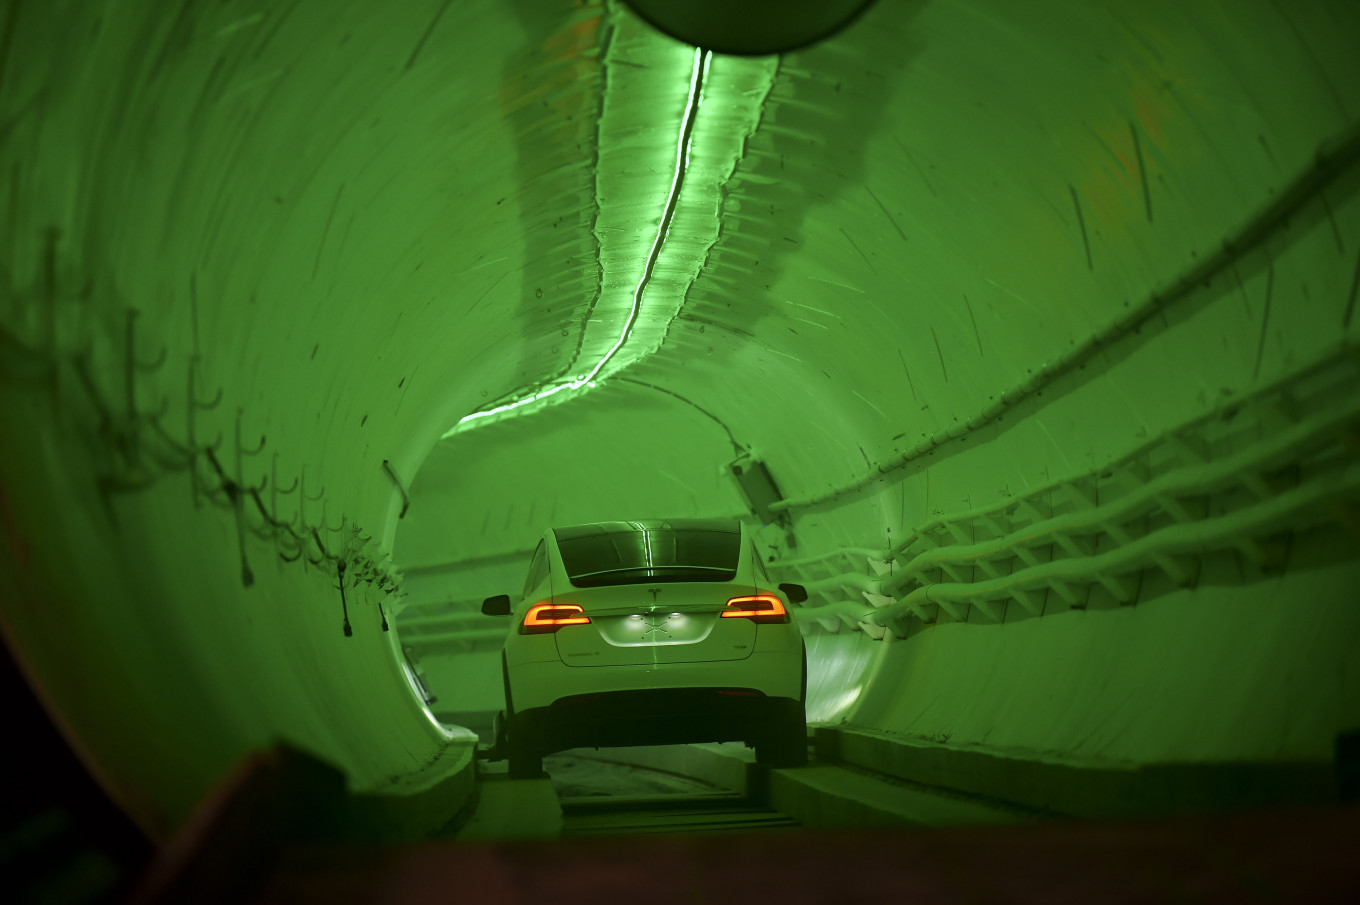 Elon Musk says he personally spent $40m on Boring Co.